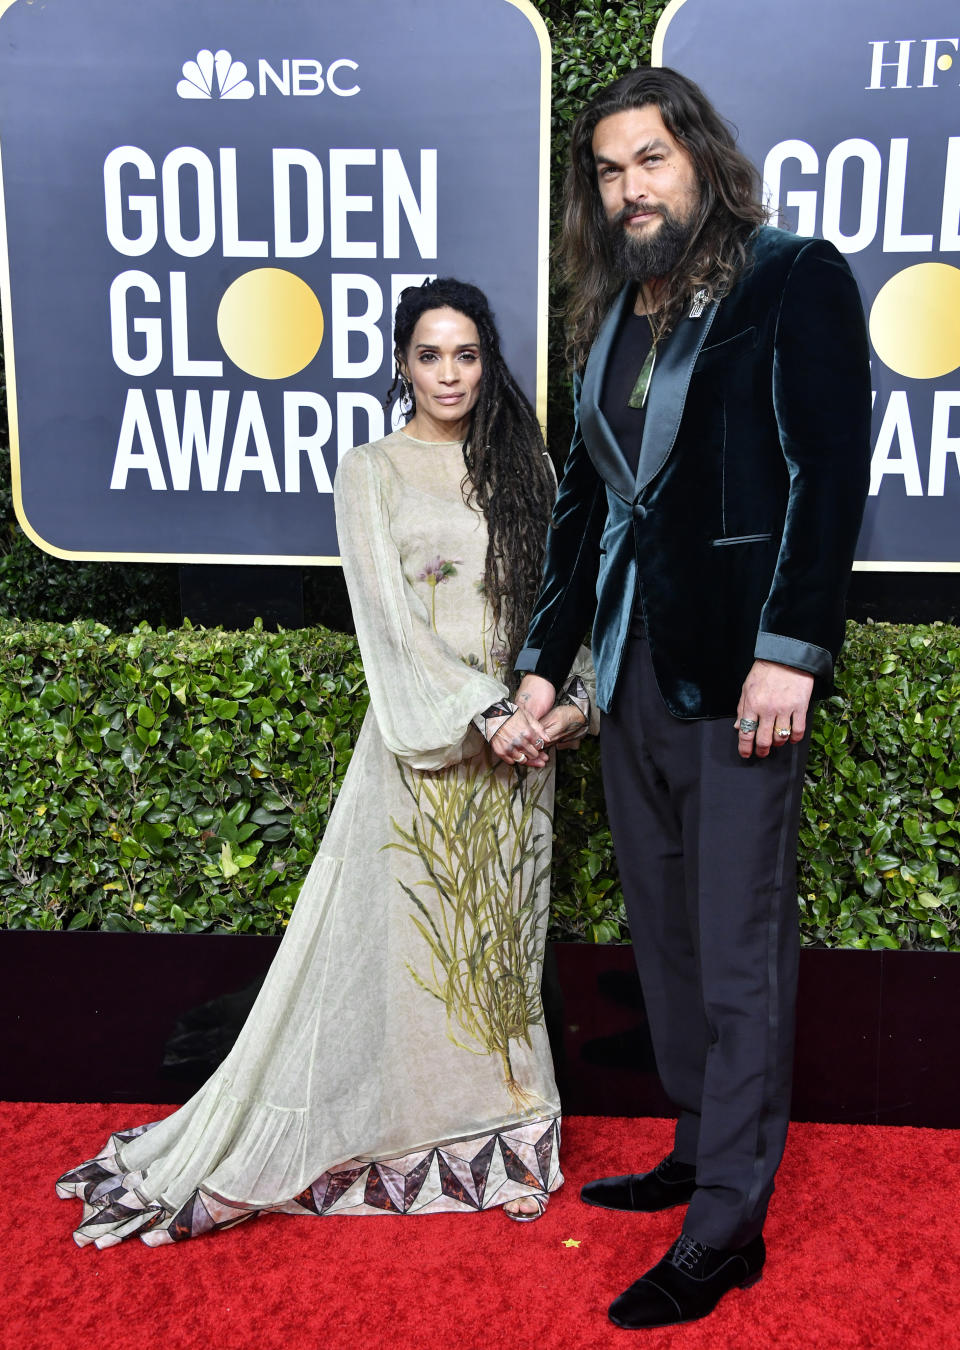 """The star of the Apple TV series """"See"""" wore a dark turquoise velvet blazer and signature flowing locks to serve as a Golden Globes presenter. (Photo by Frazer Harrison/Getty Images)"""